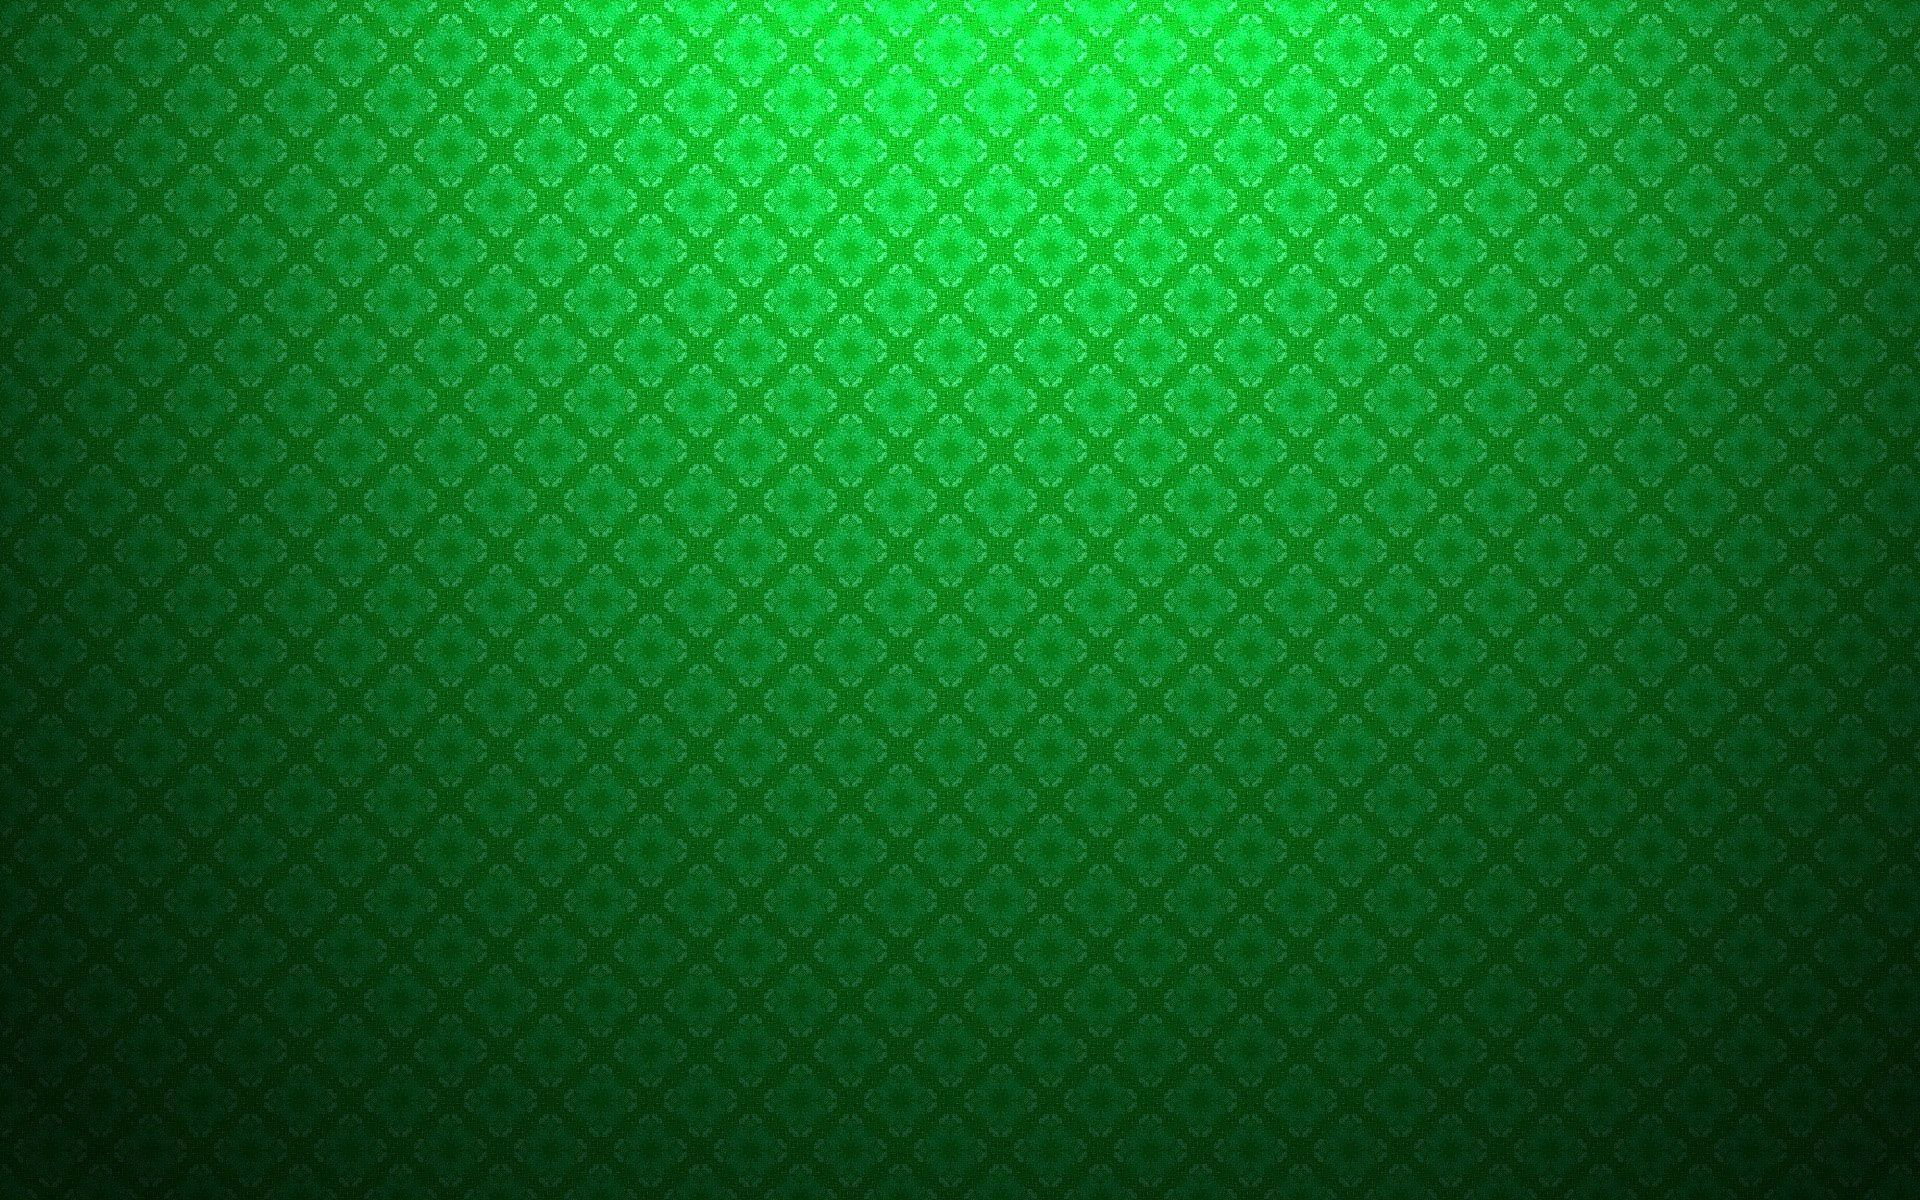 Download 91 Wallpaper Hd Green Gratis Terbaik